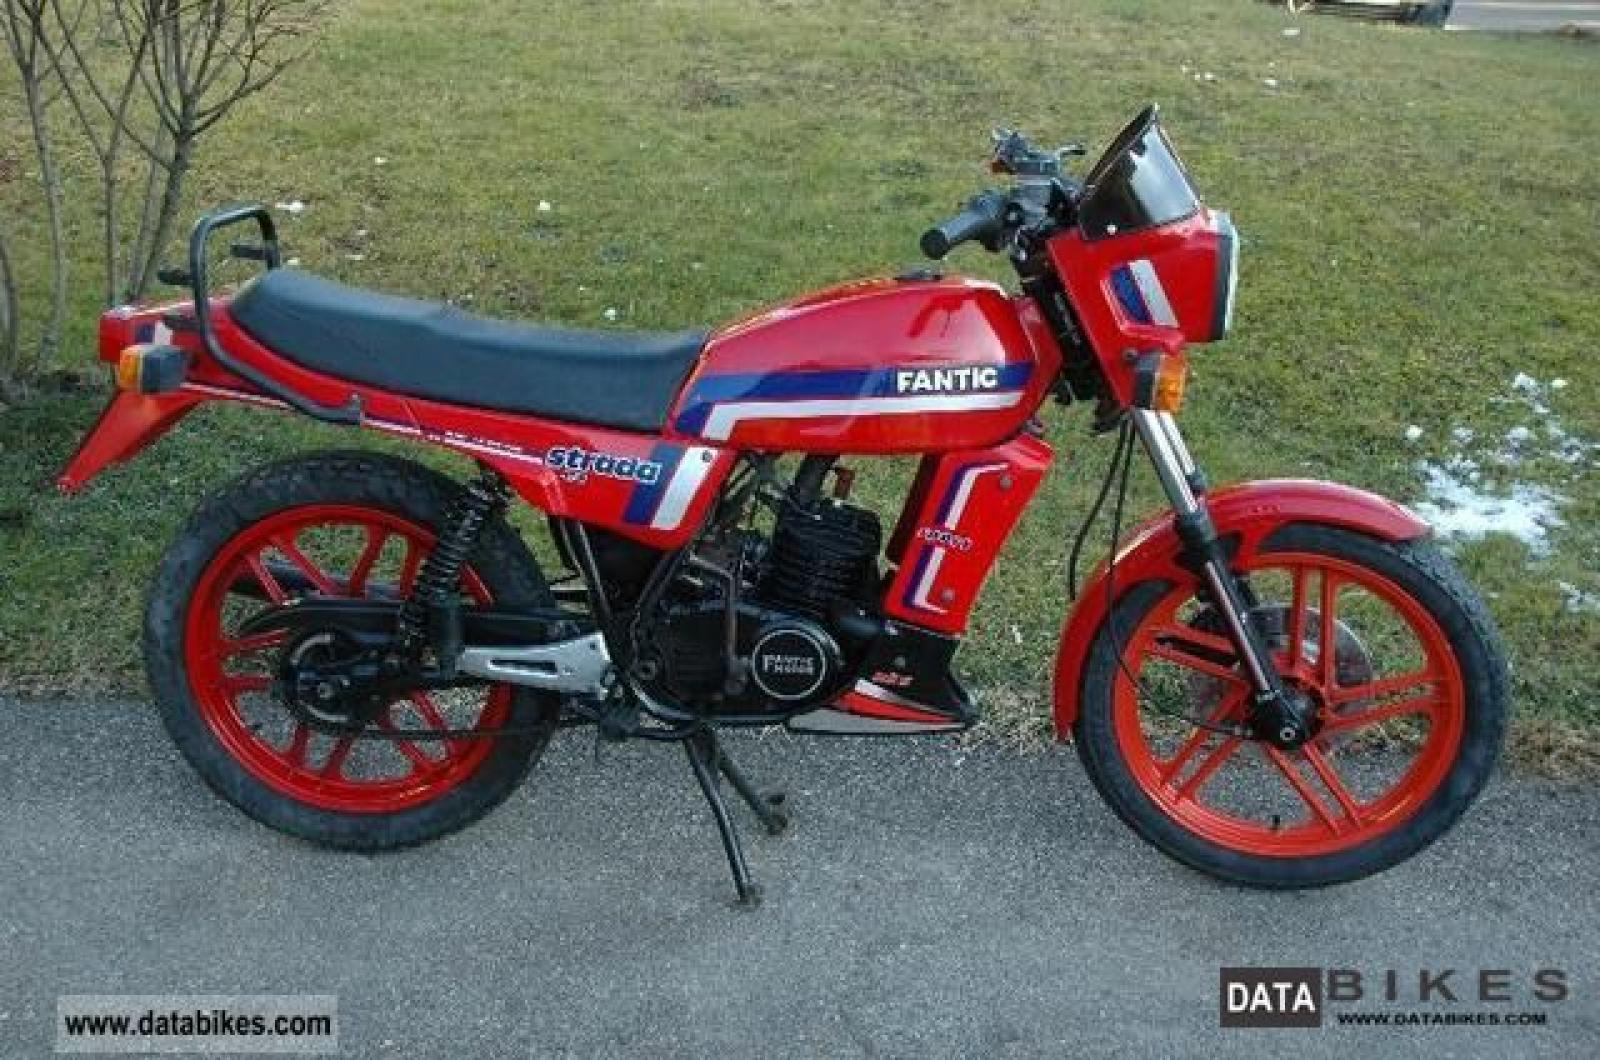 Fantic 125 Sport HP 1 1990 images #72390